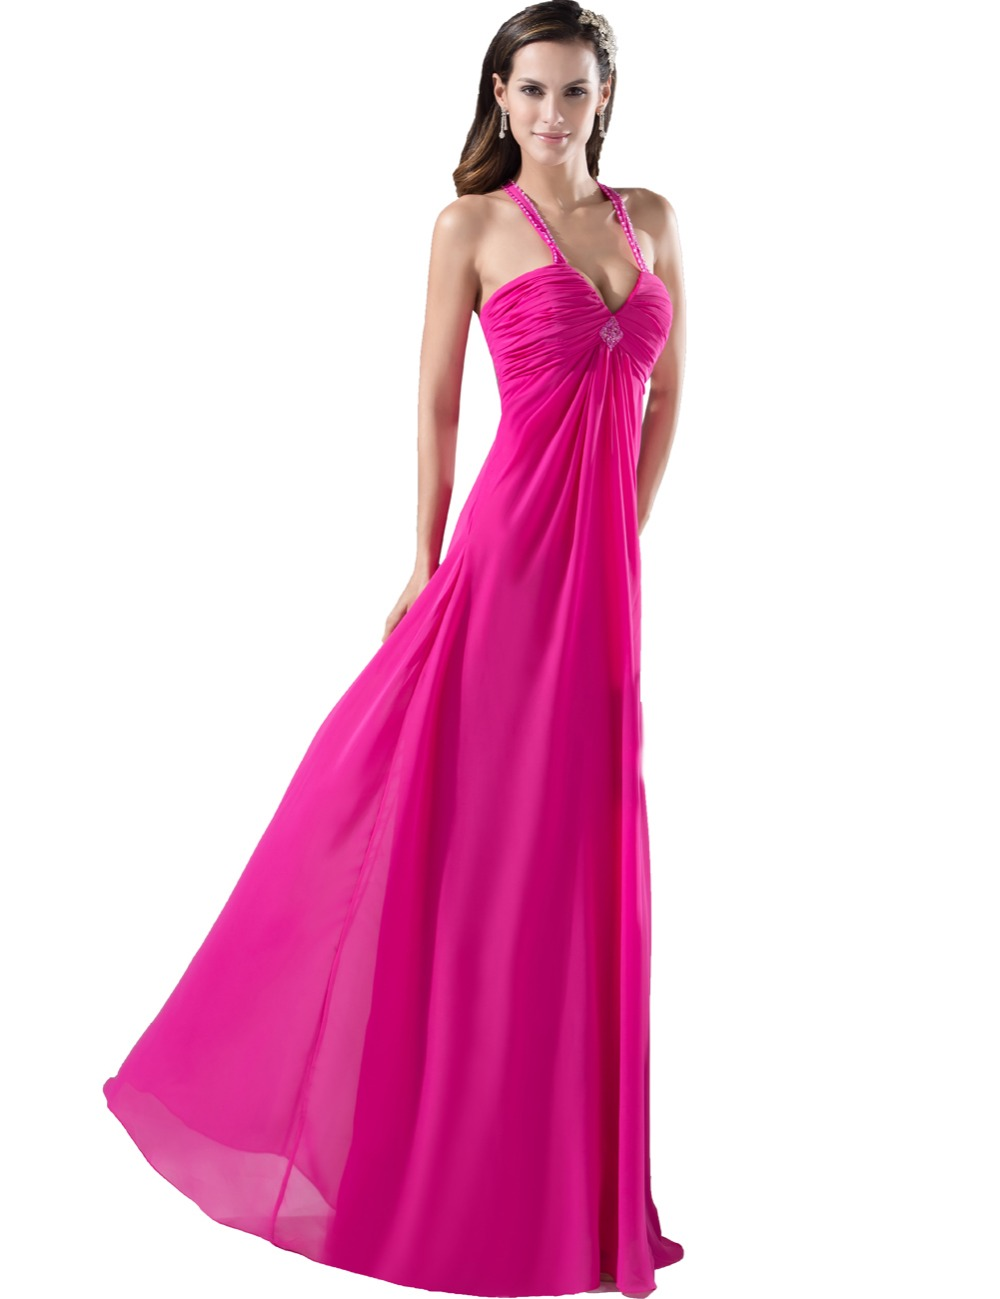 Evening Dresses For Cheap Price - Homecoming Prom Dresses